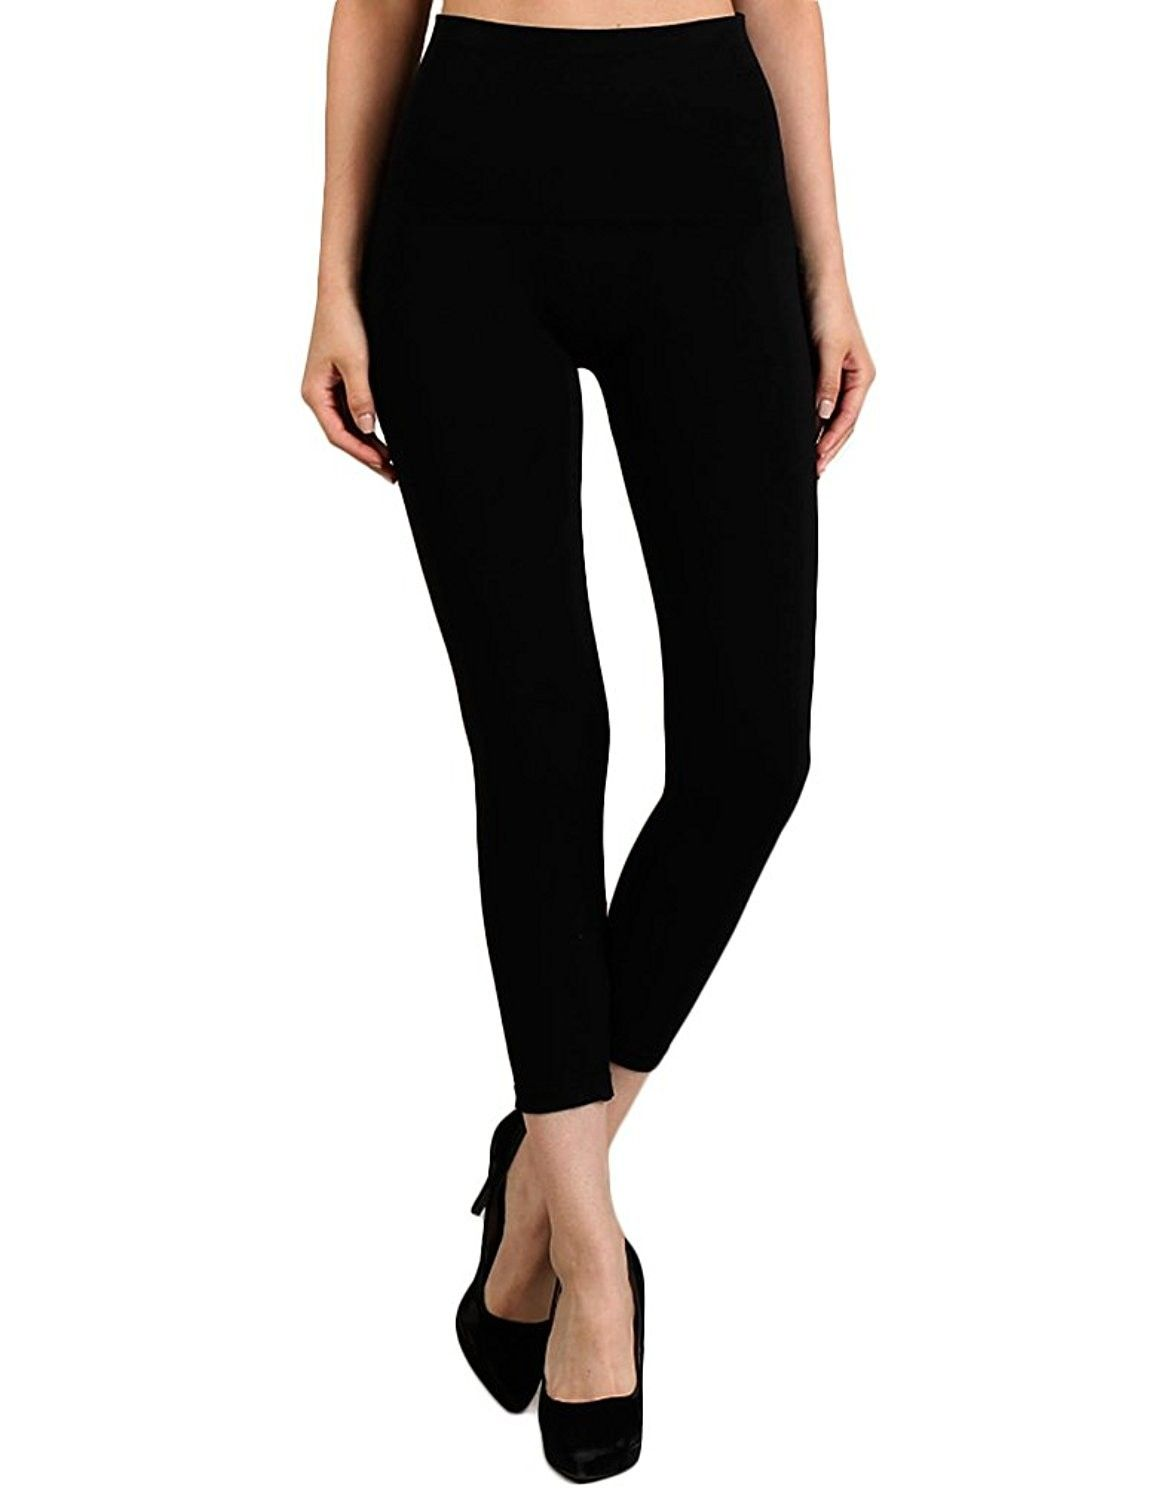 9f1abfc3e1f6bf M-Rena Tummy Tuck High Waist 3/4 Cropped Leggings - Black - CH12EZV85TJ, Women's Clothing, Leggings #women #fashion #clothing #style #sexy #outfits # Leggings